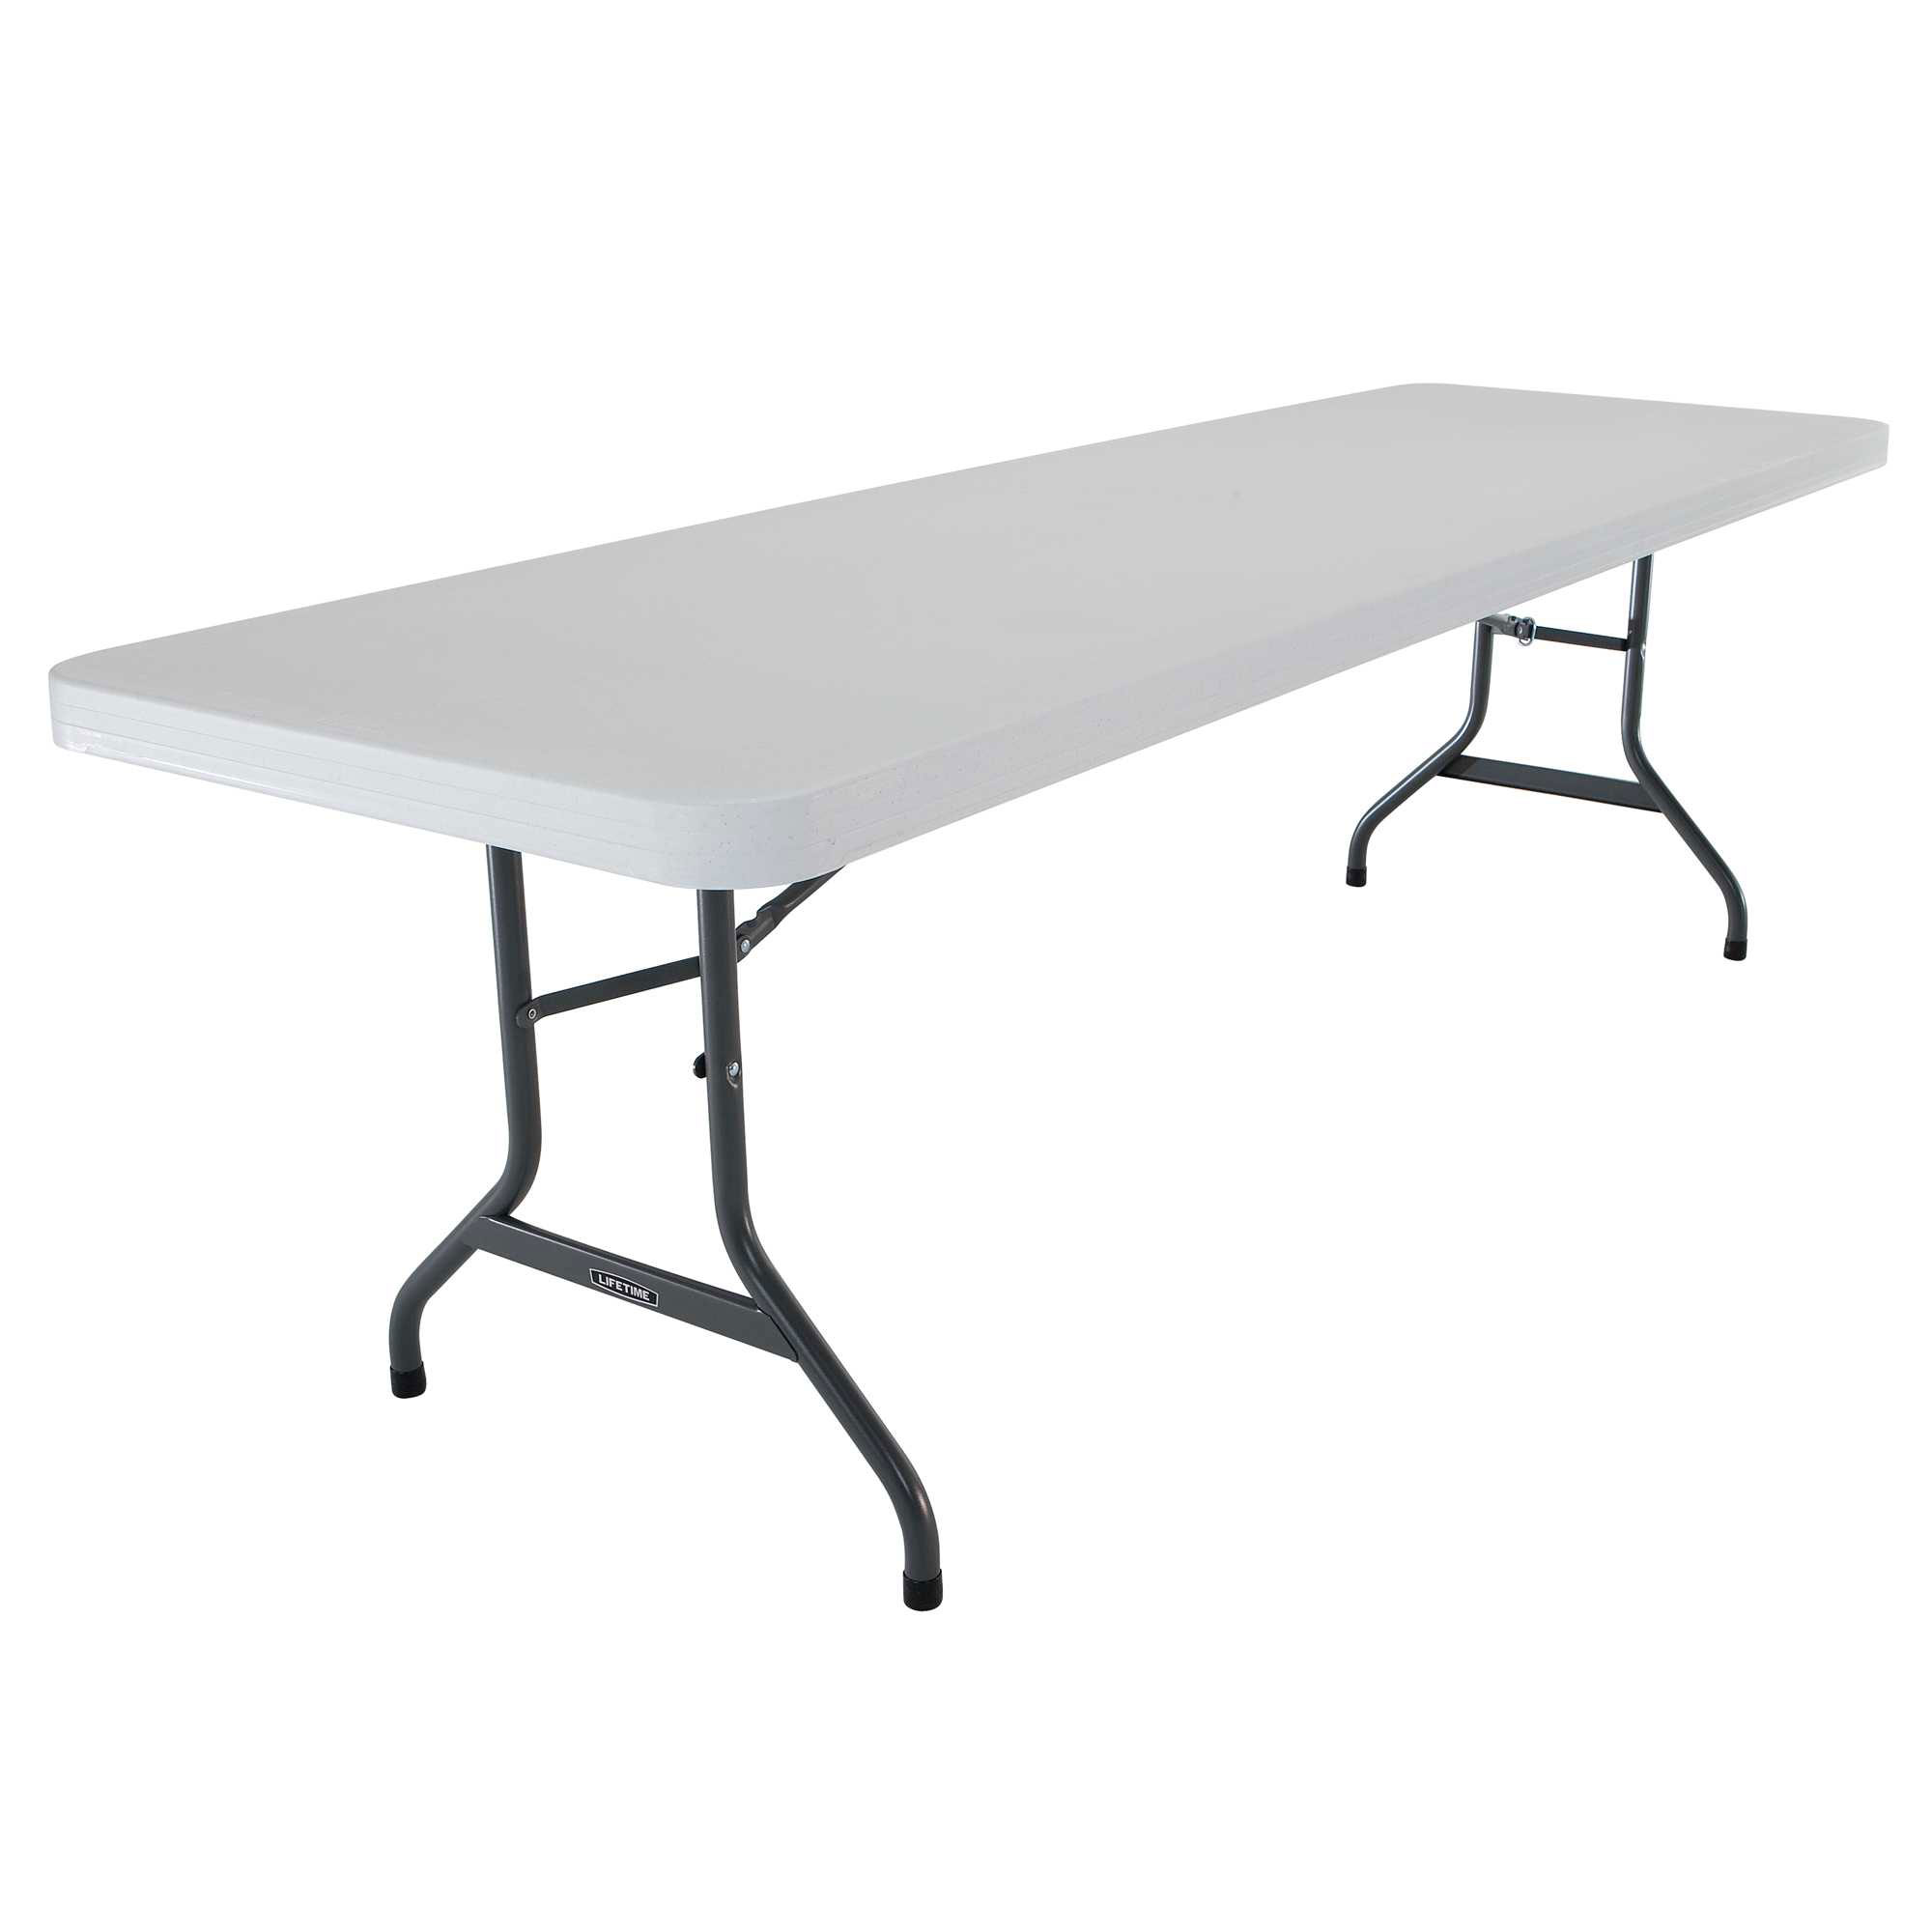 8ft Rectangle Table Image